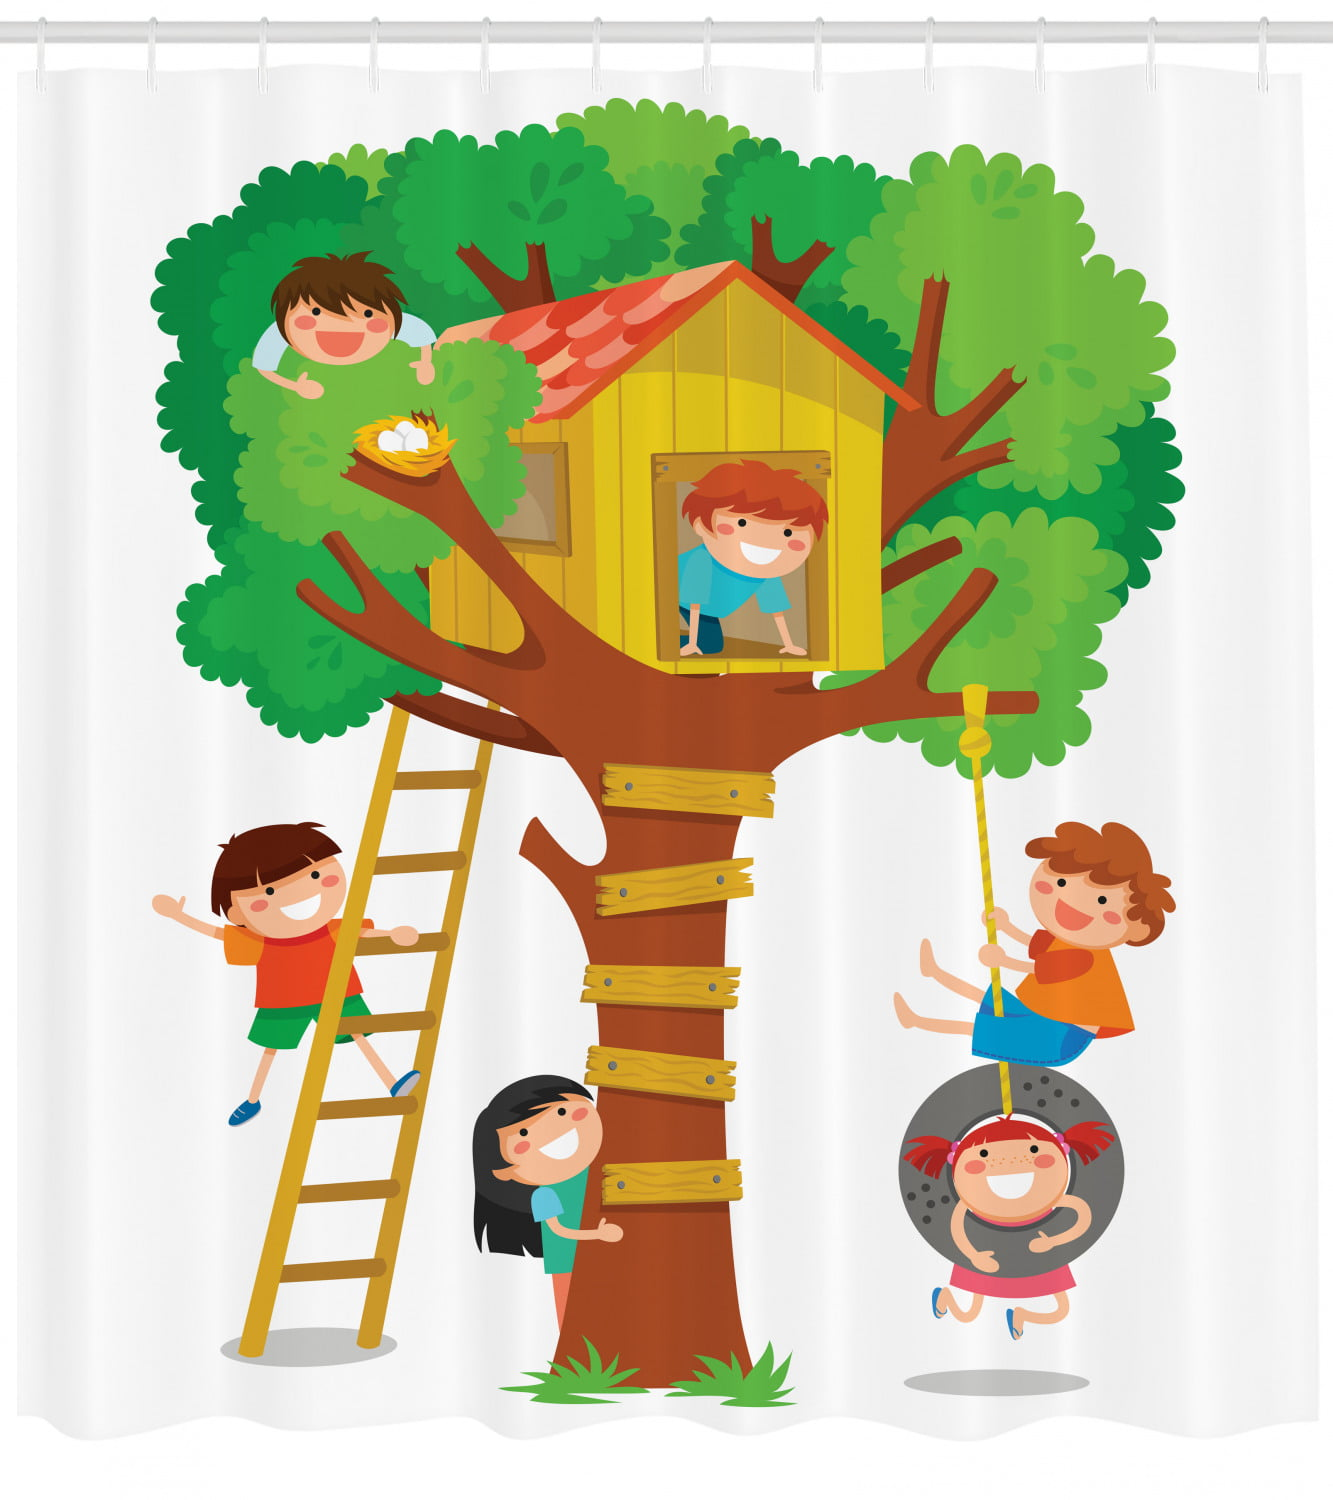 Kids Shower Curtain Cheerful Little Boys And Girl Playing In A Tree House Happy Childhood Friends Cartoon Fabric Bathroom Set With Hooks 69w X 84l Inches Extra Long Multicolor By Ambesonne Home our channels little treehouse nursery rhymes and kids songs. kids shower curtain cheerful little boys and girl playing in a tree house happy childhood friends cartoon fabric bathroom set with hooks 69w x 84l